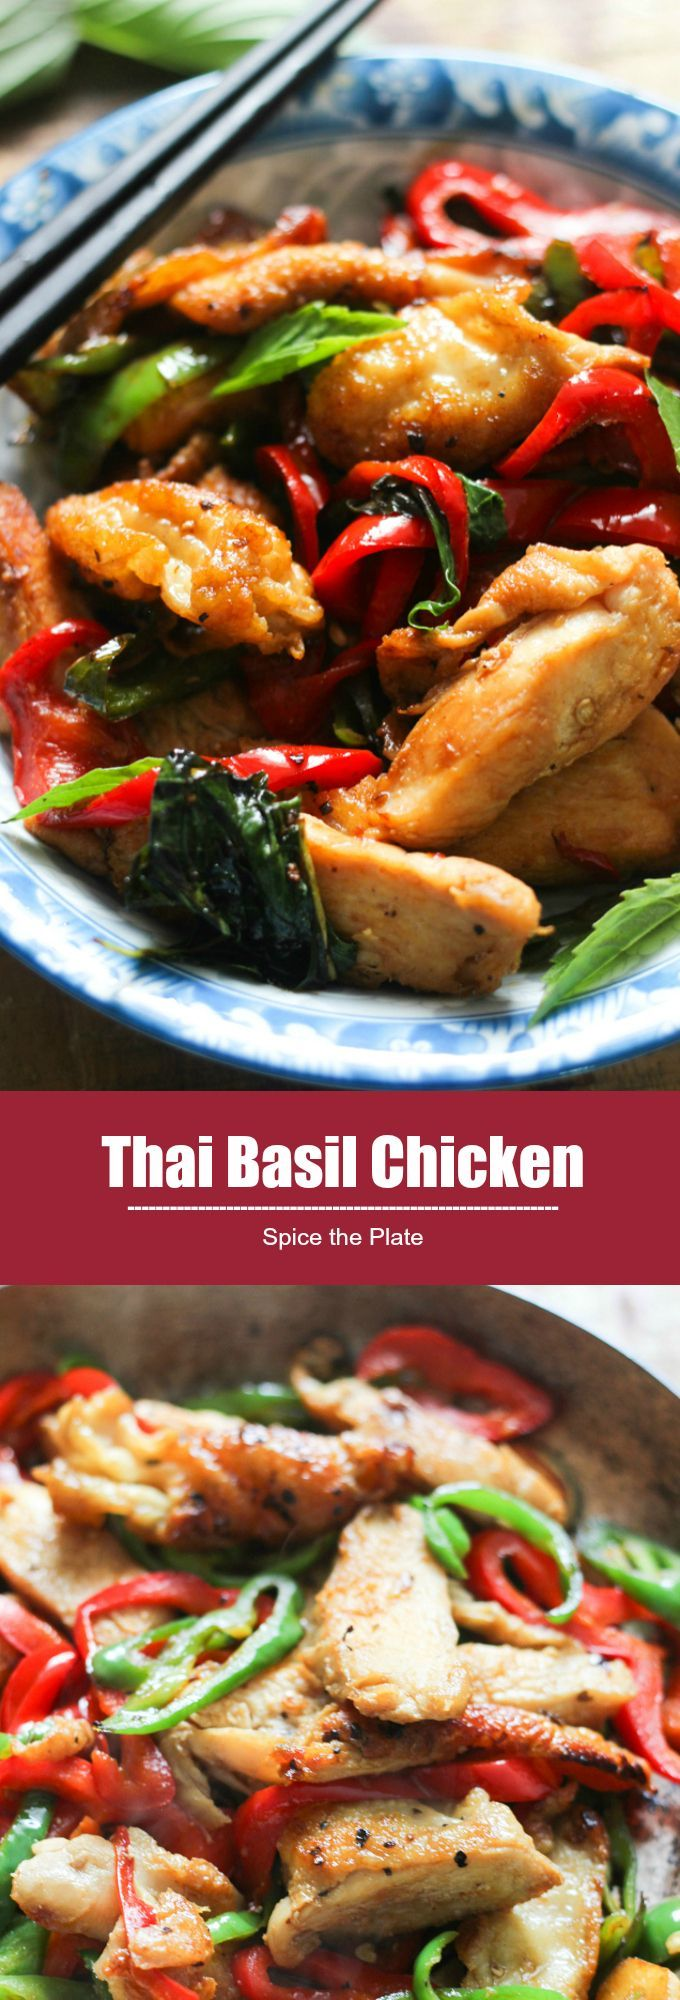 Thai Basil Chicken - one of the most popular thai dishes, ready in 30 minutes!